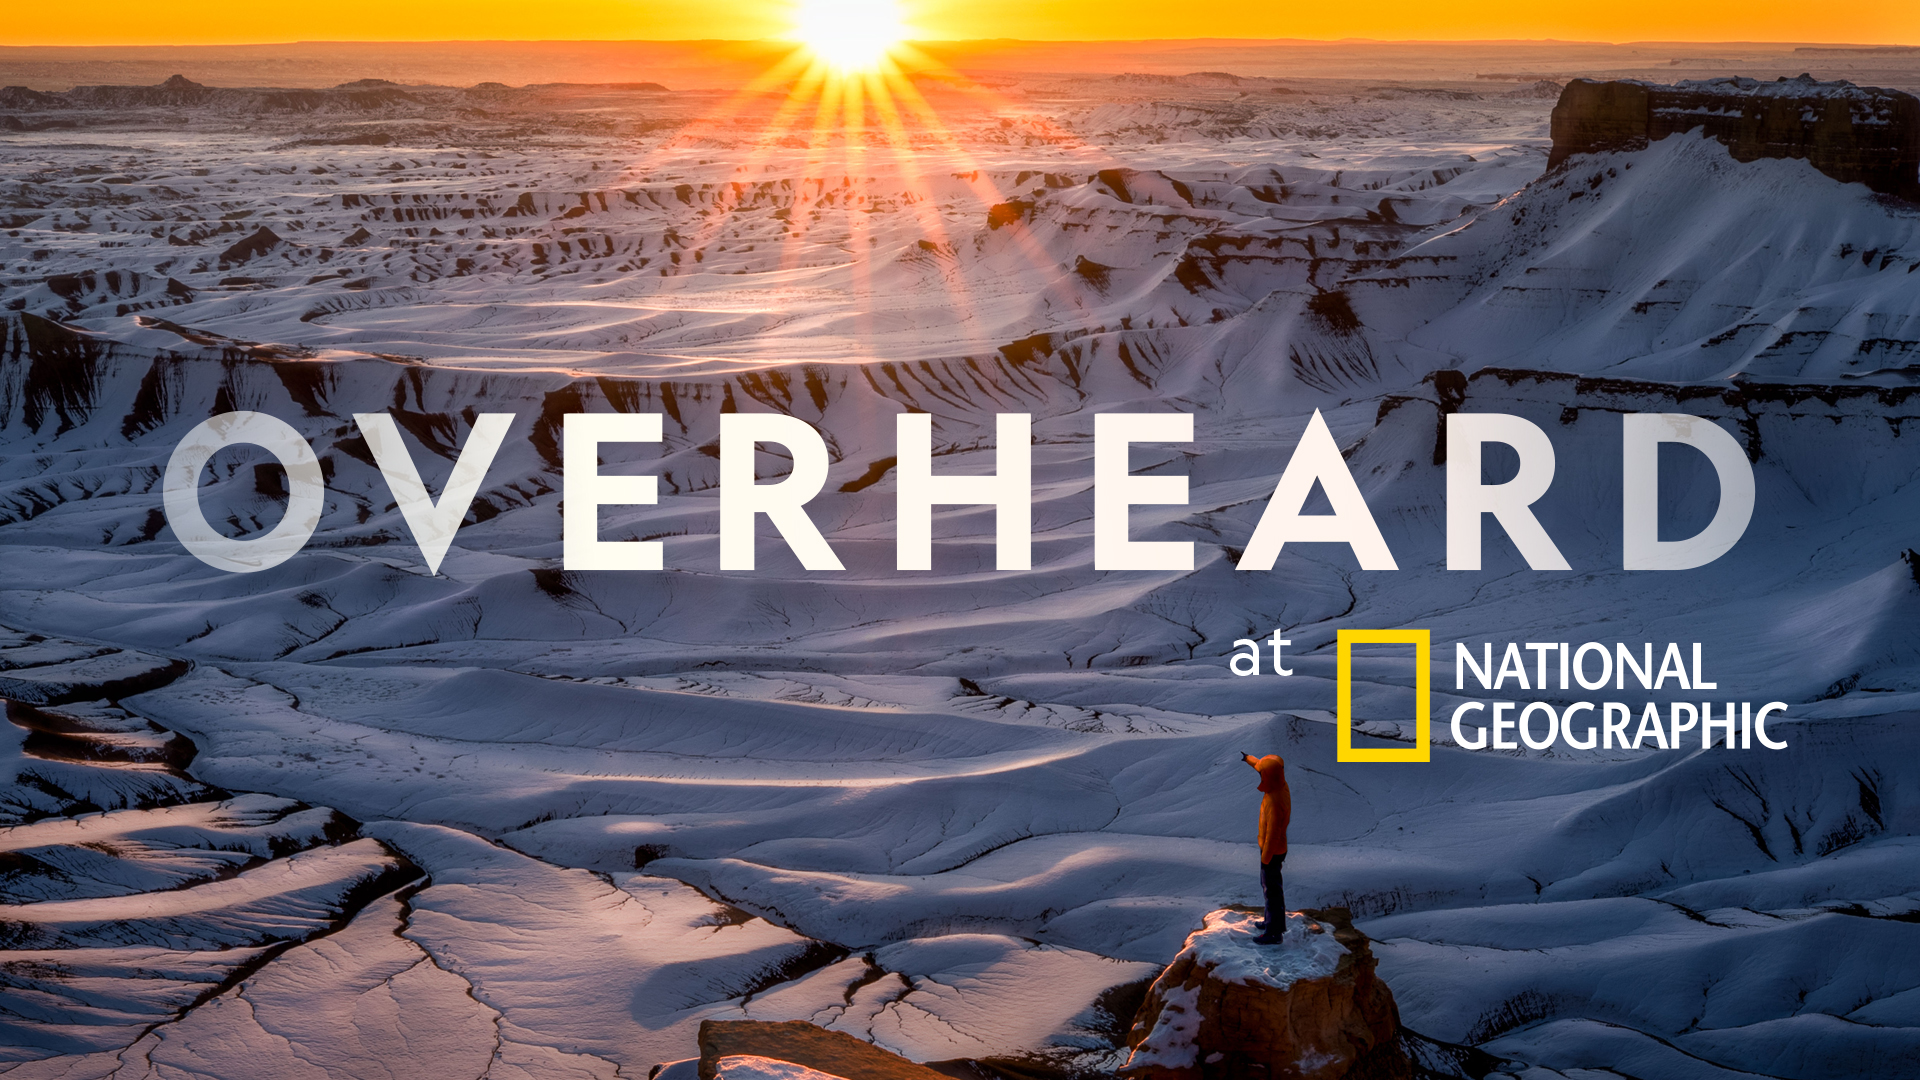 National Geographic's Overheard at National Geographic Podcast Returns For Season 3